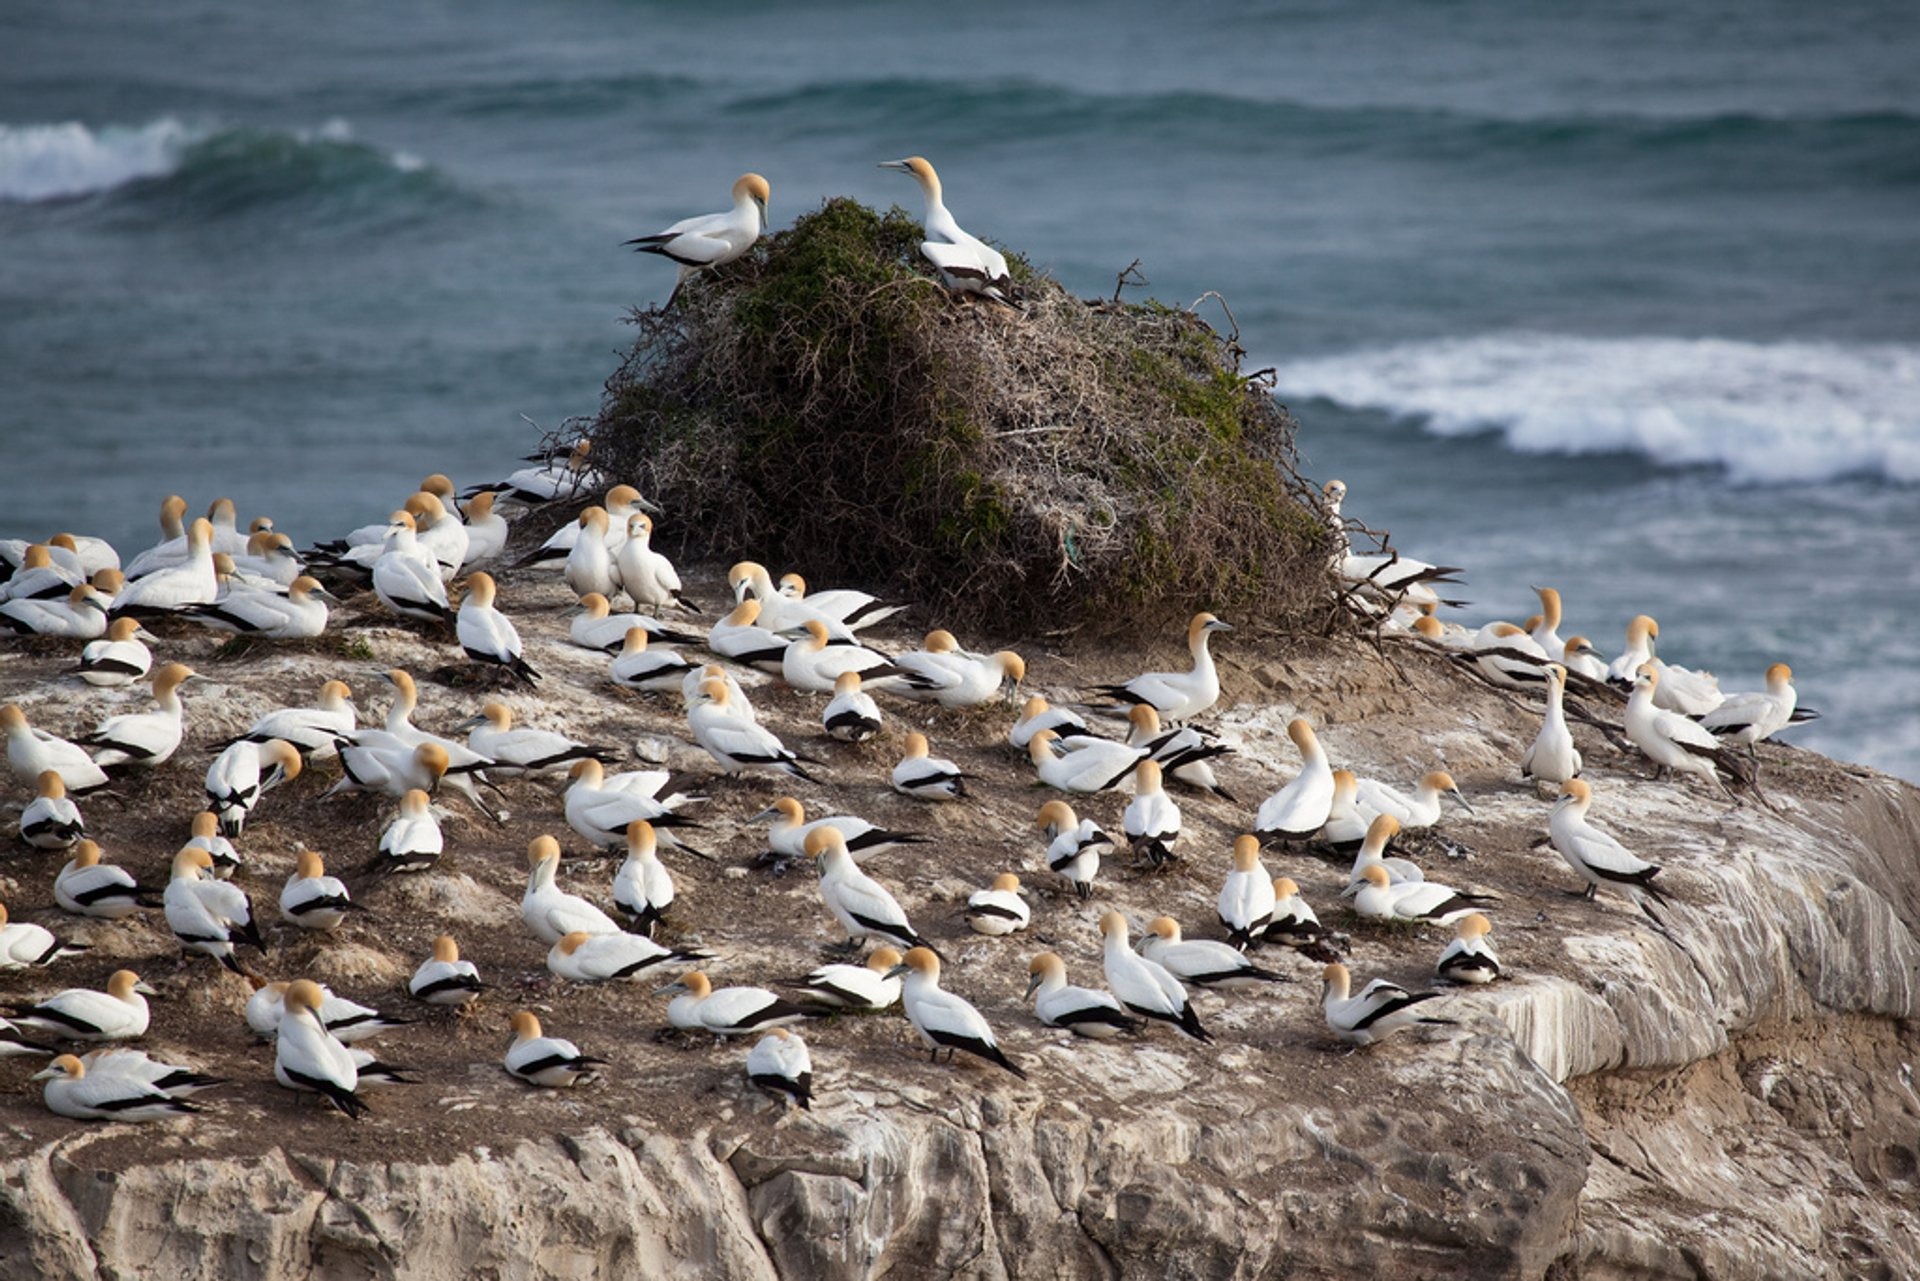 Gannet Colony in New Zealand 2020 - Best Time